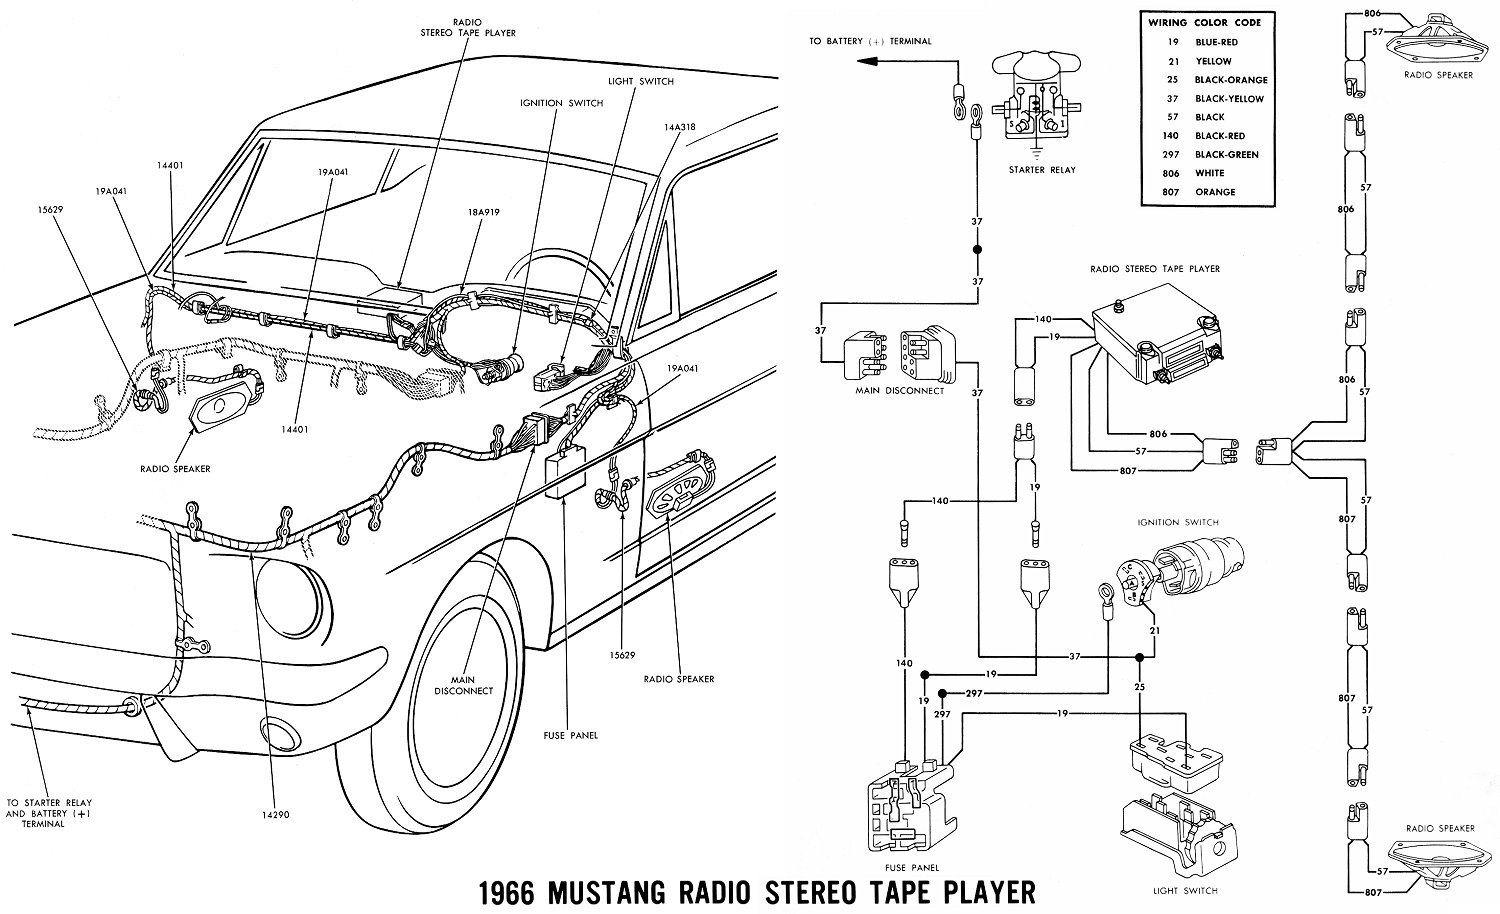 66stereo 1966 mustang wiring diagrams average joe restoration 1966 mustang wiring diagrams at webbmarketing.co